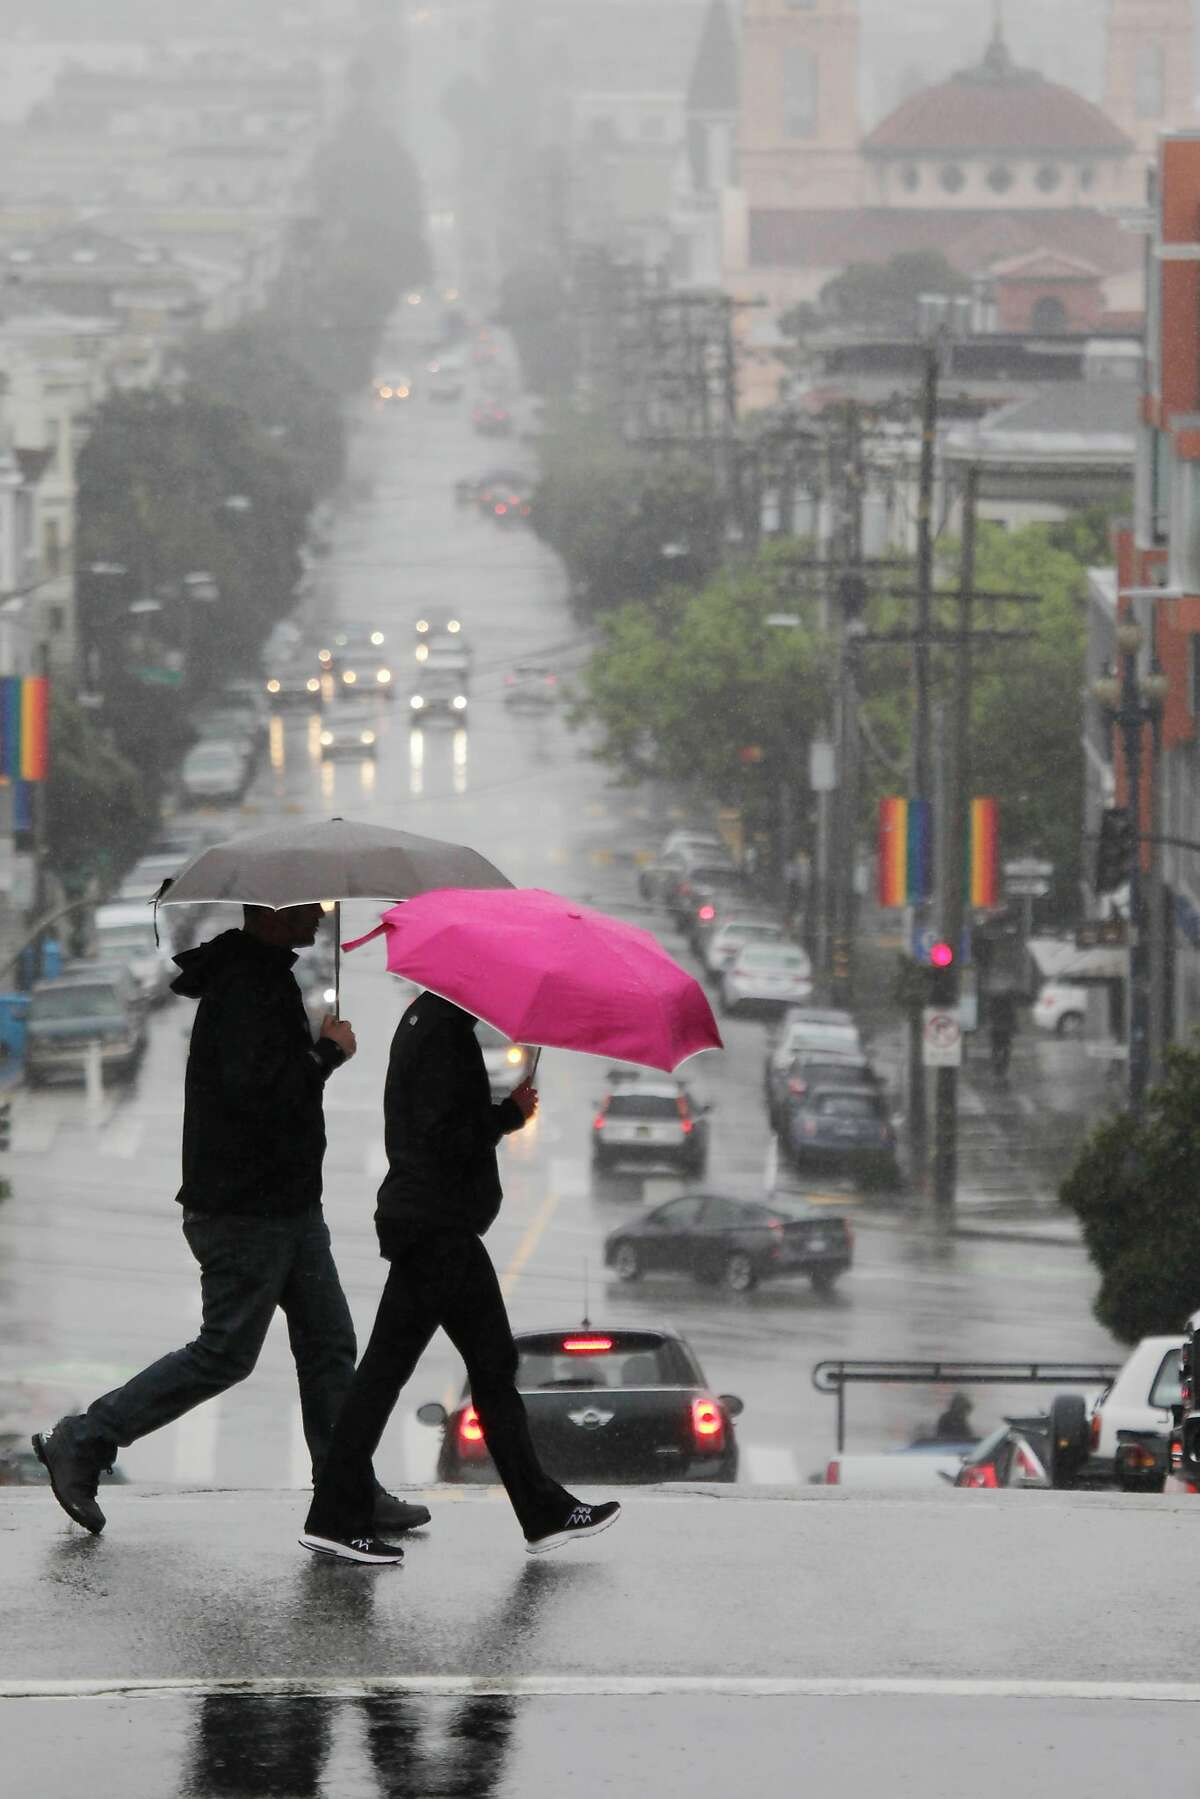 Pedestrians cross 16th Street under their umbrellas in the rain on Friday, March 24, 2017 in San Francisco, Calif.